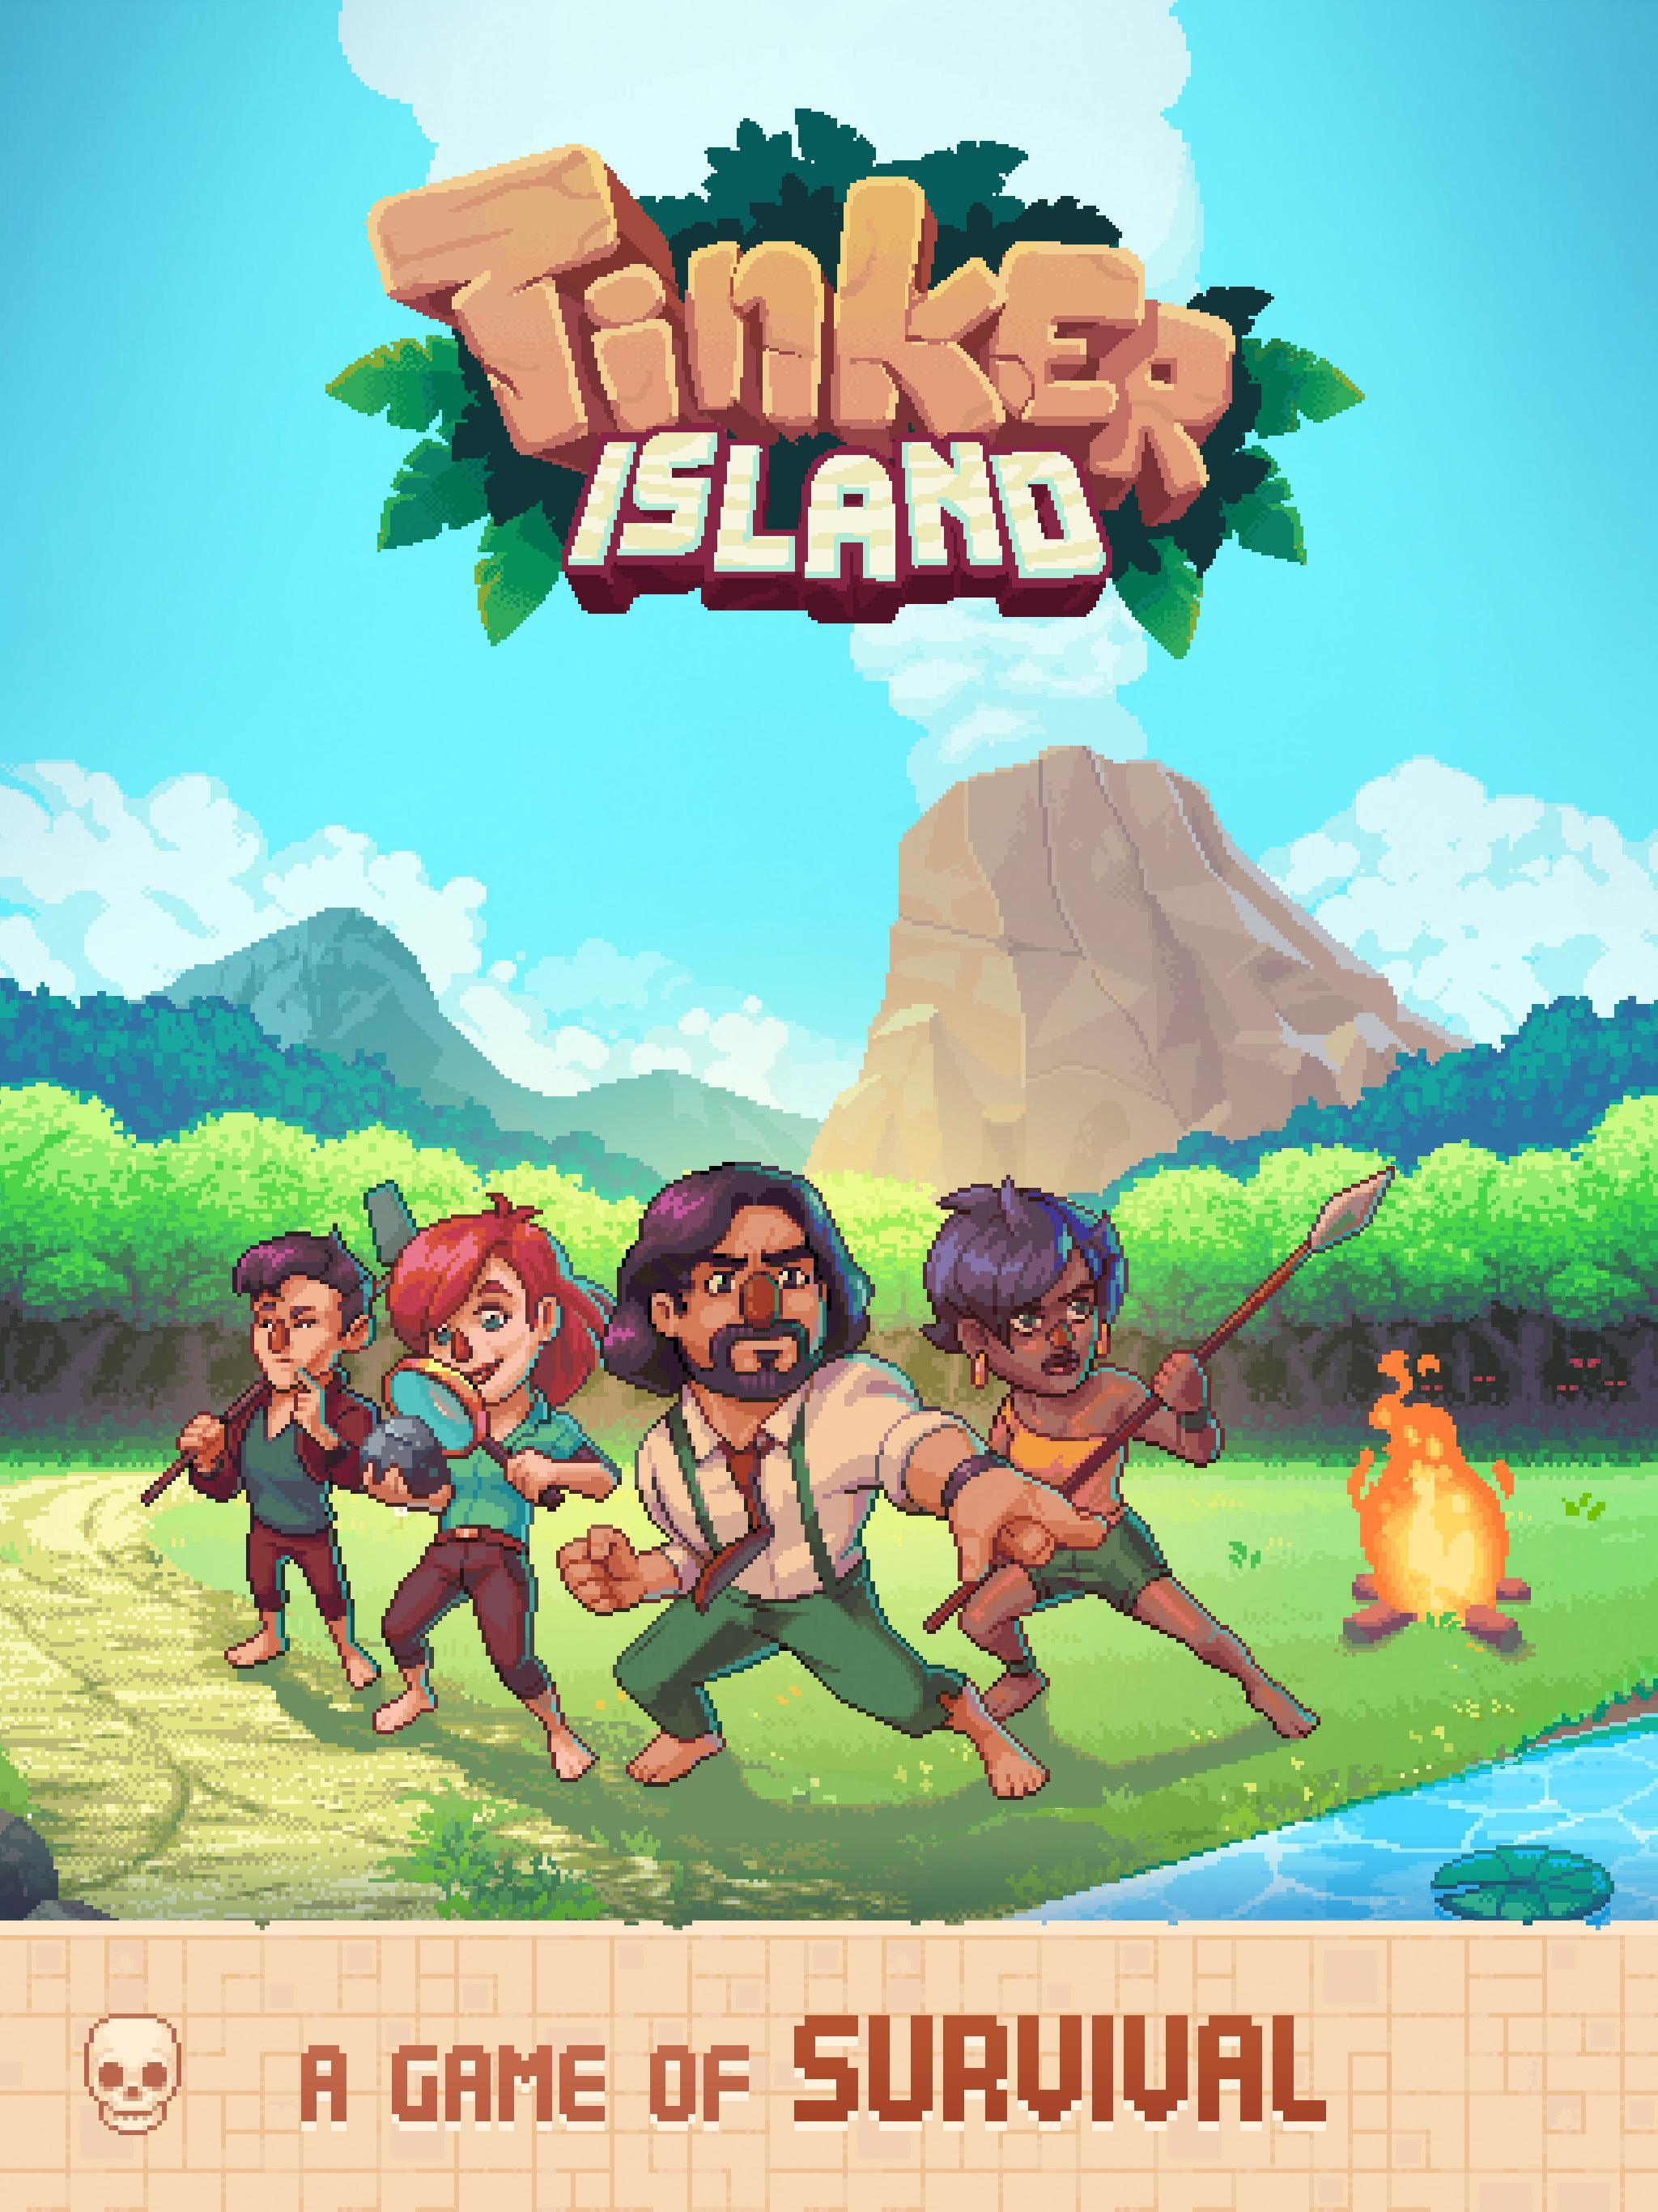 Tinker Island Survival Story Adventure 1.5.09 Screenshot 20